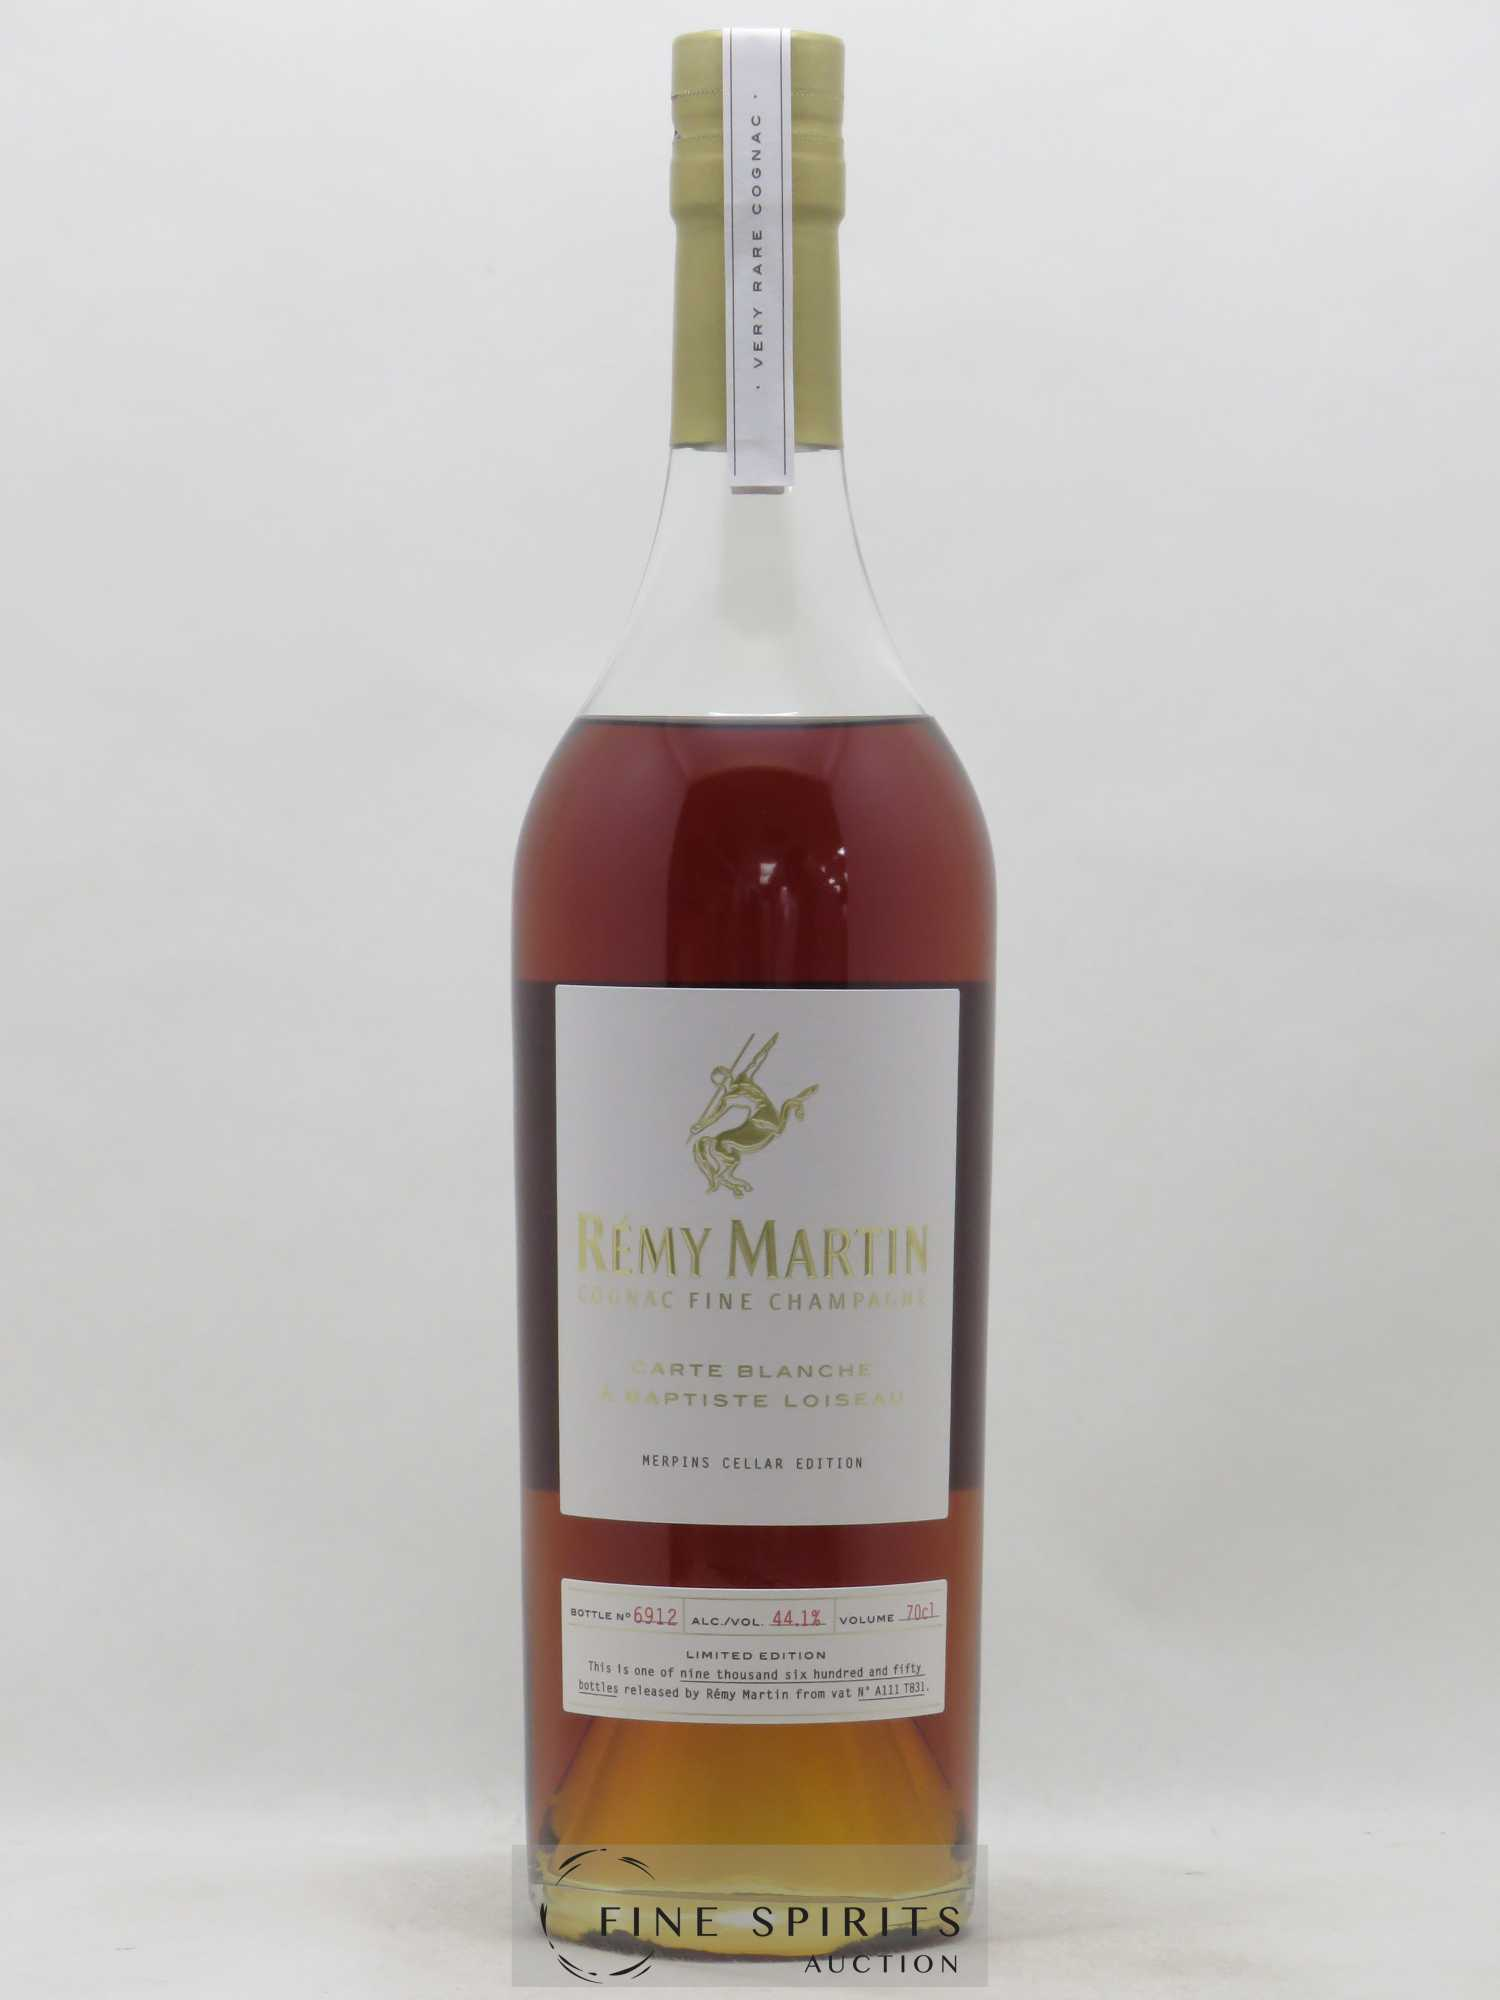 Cognac Rémy Martin Of. Carte Blanche Edition 2 Merpins Cellar Edition Fine Champagne